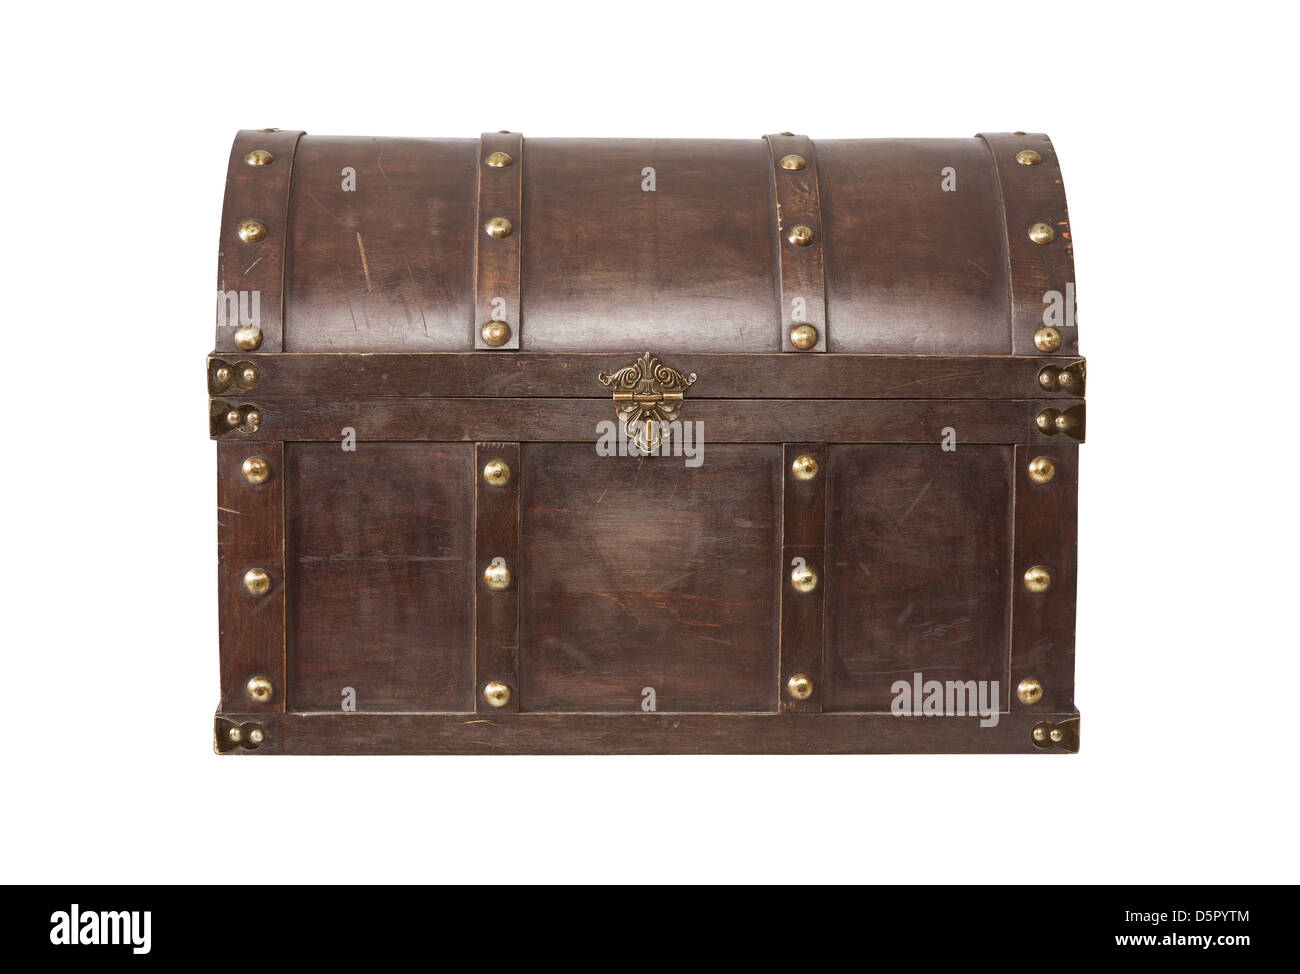 Old Treasure chest isolated on white background - Stock Image